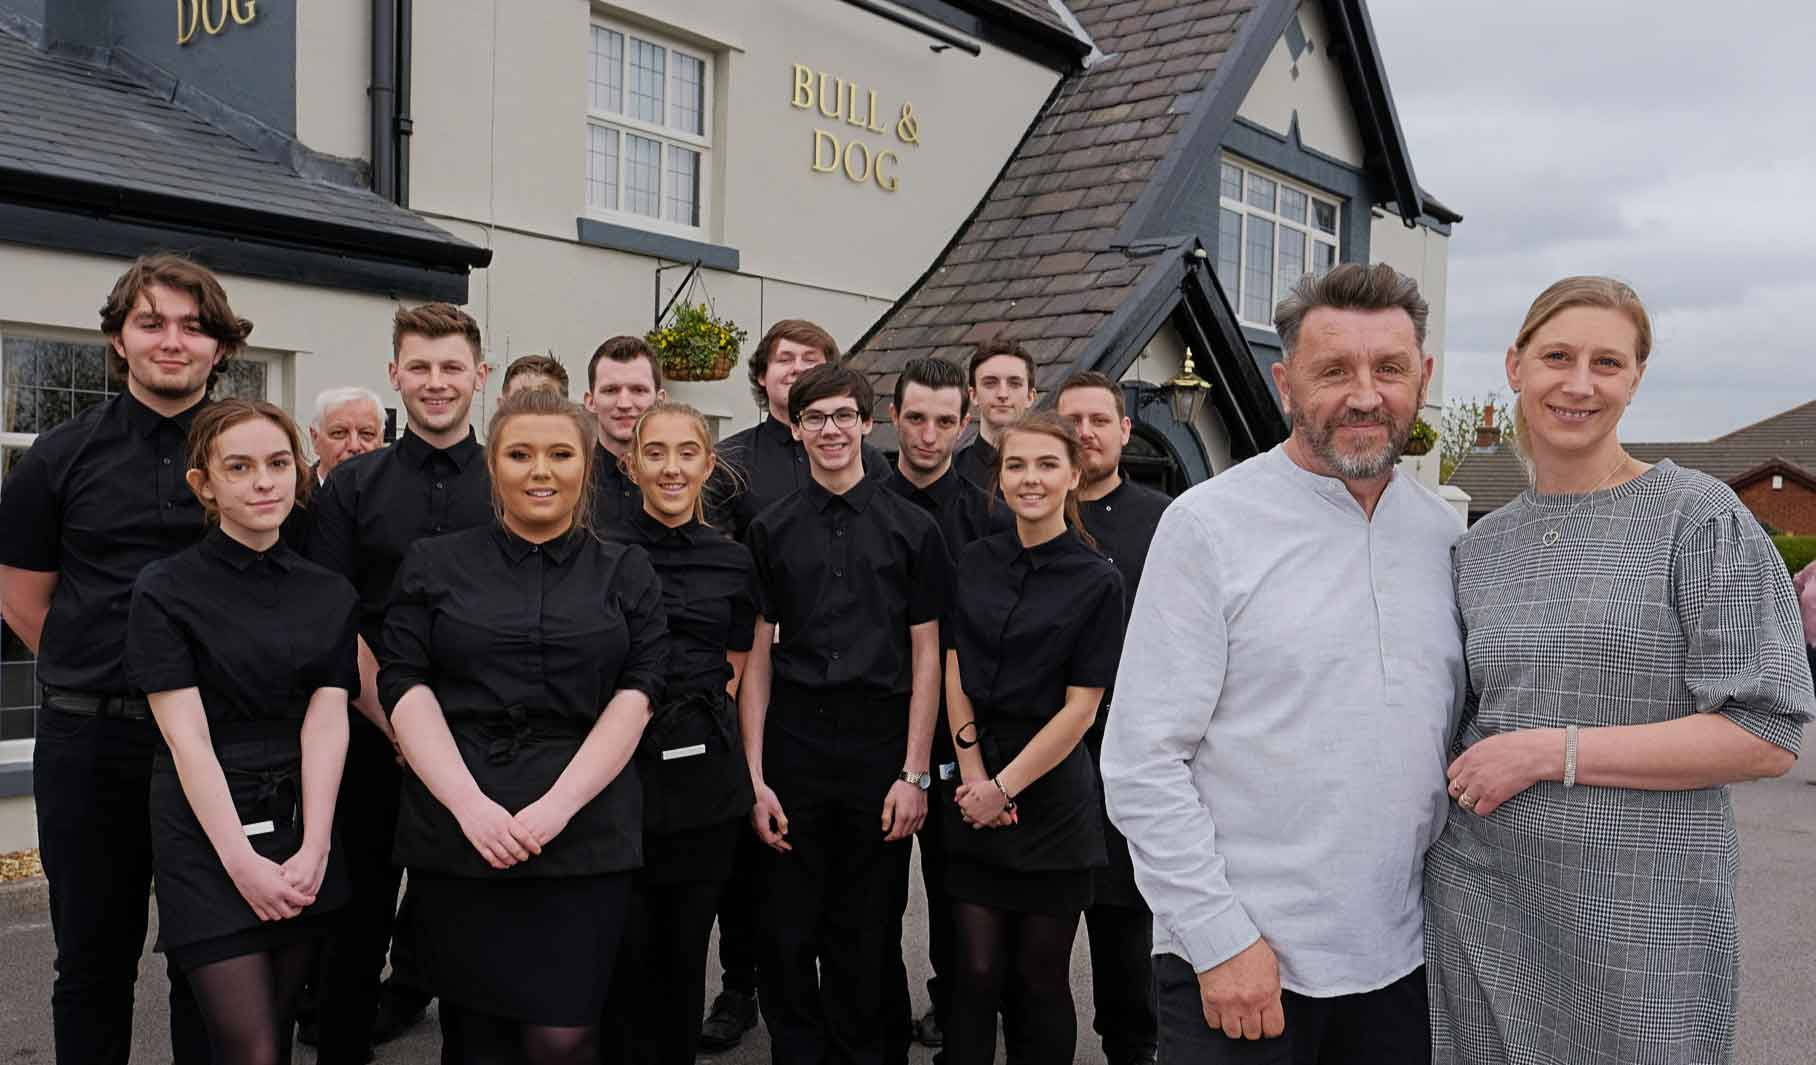 The team at the Bull and Dog waiting to greet you.